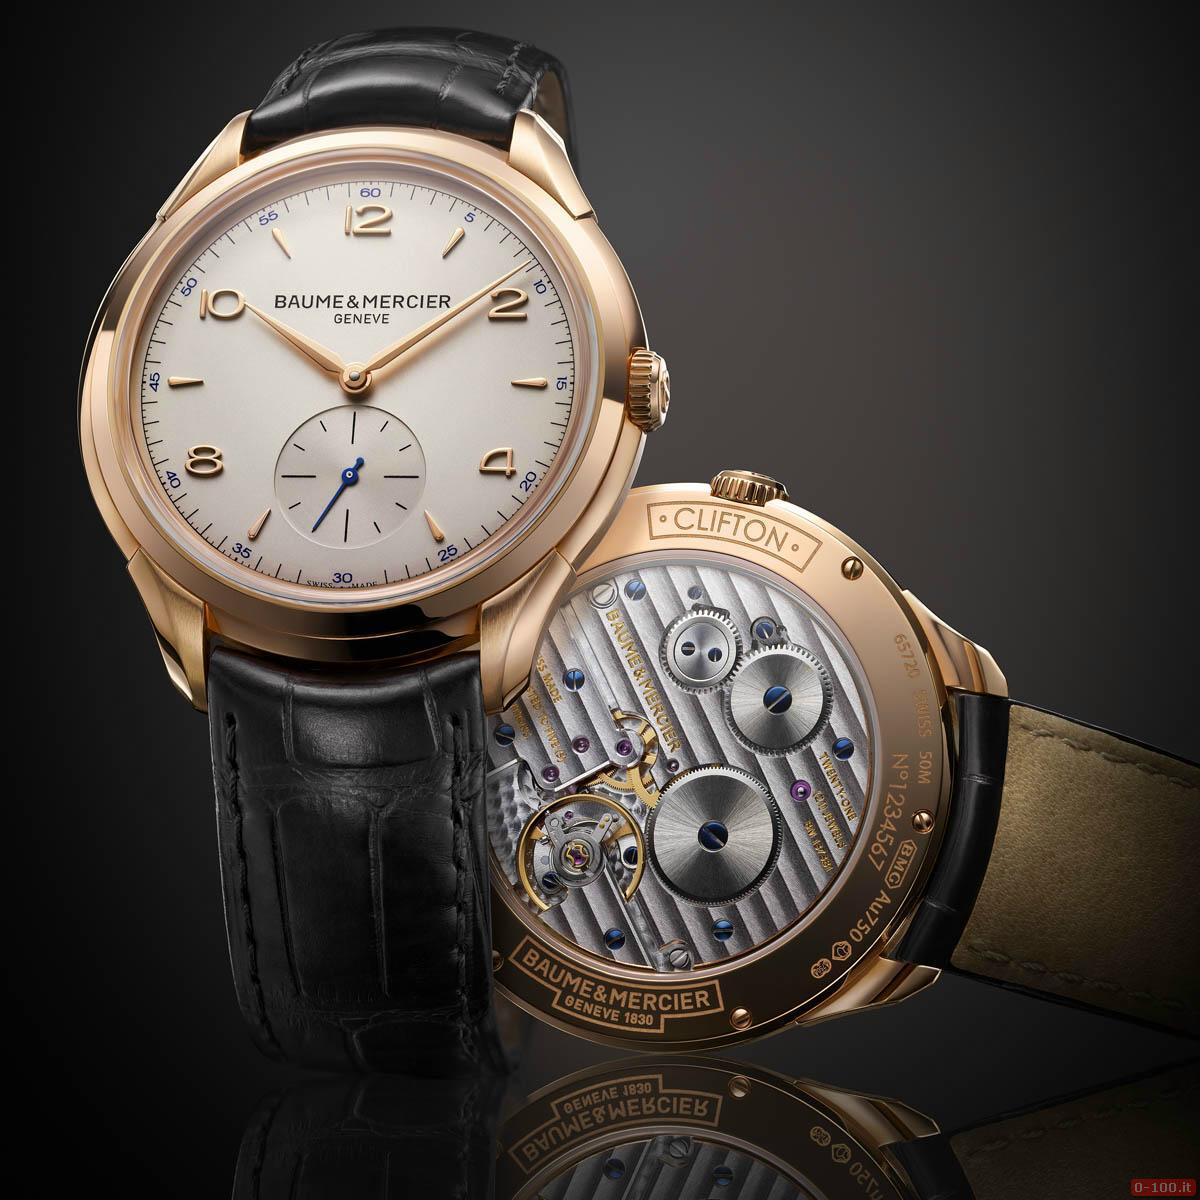 Baume & Mercier -Clifton 1830_0-1001